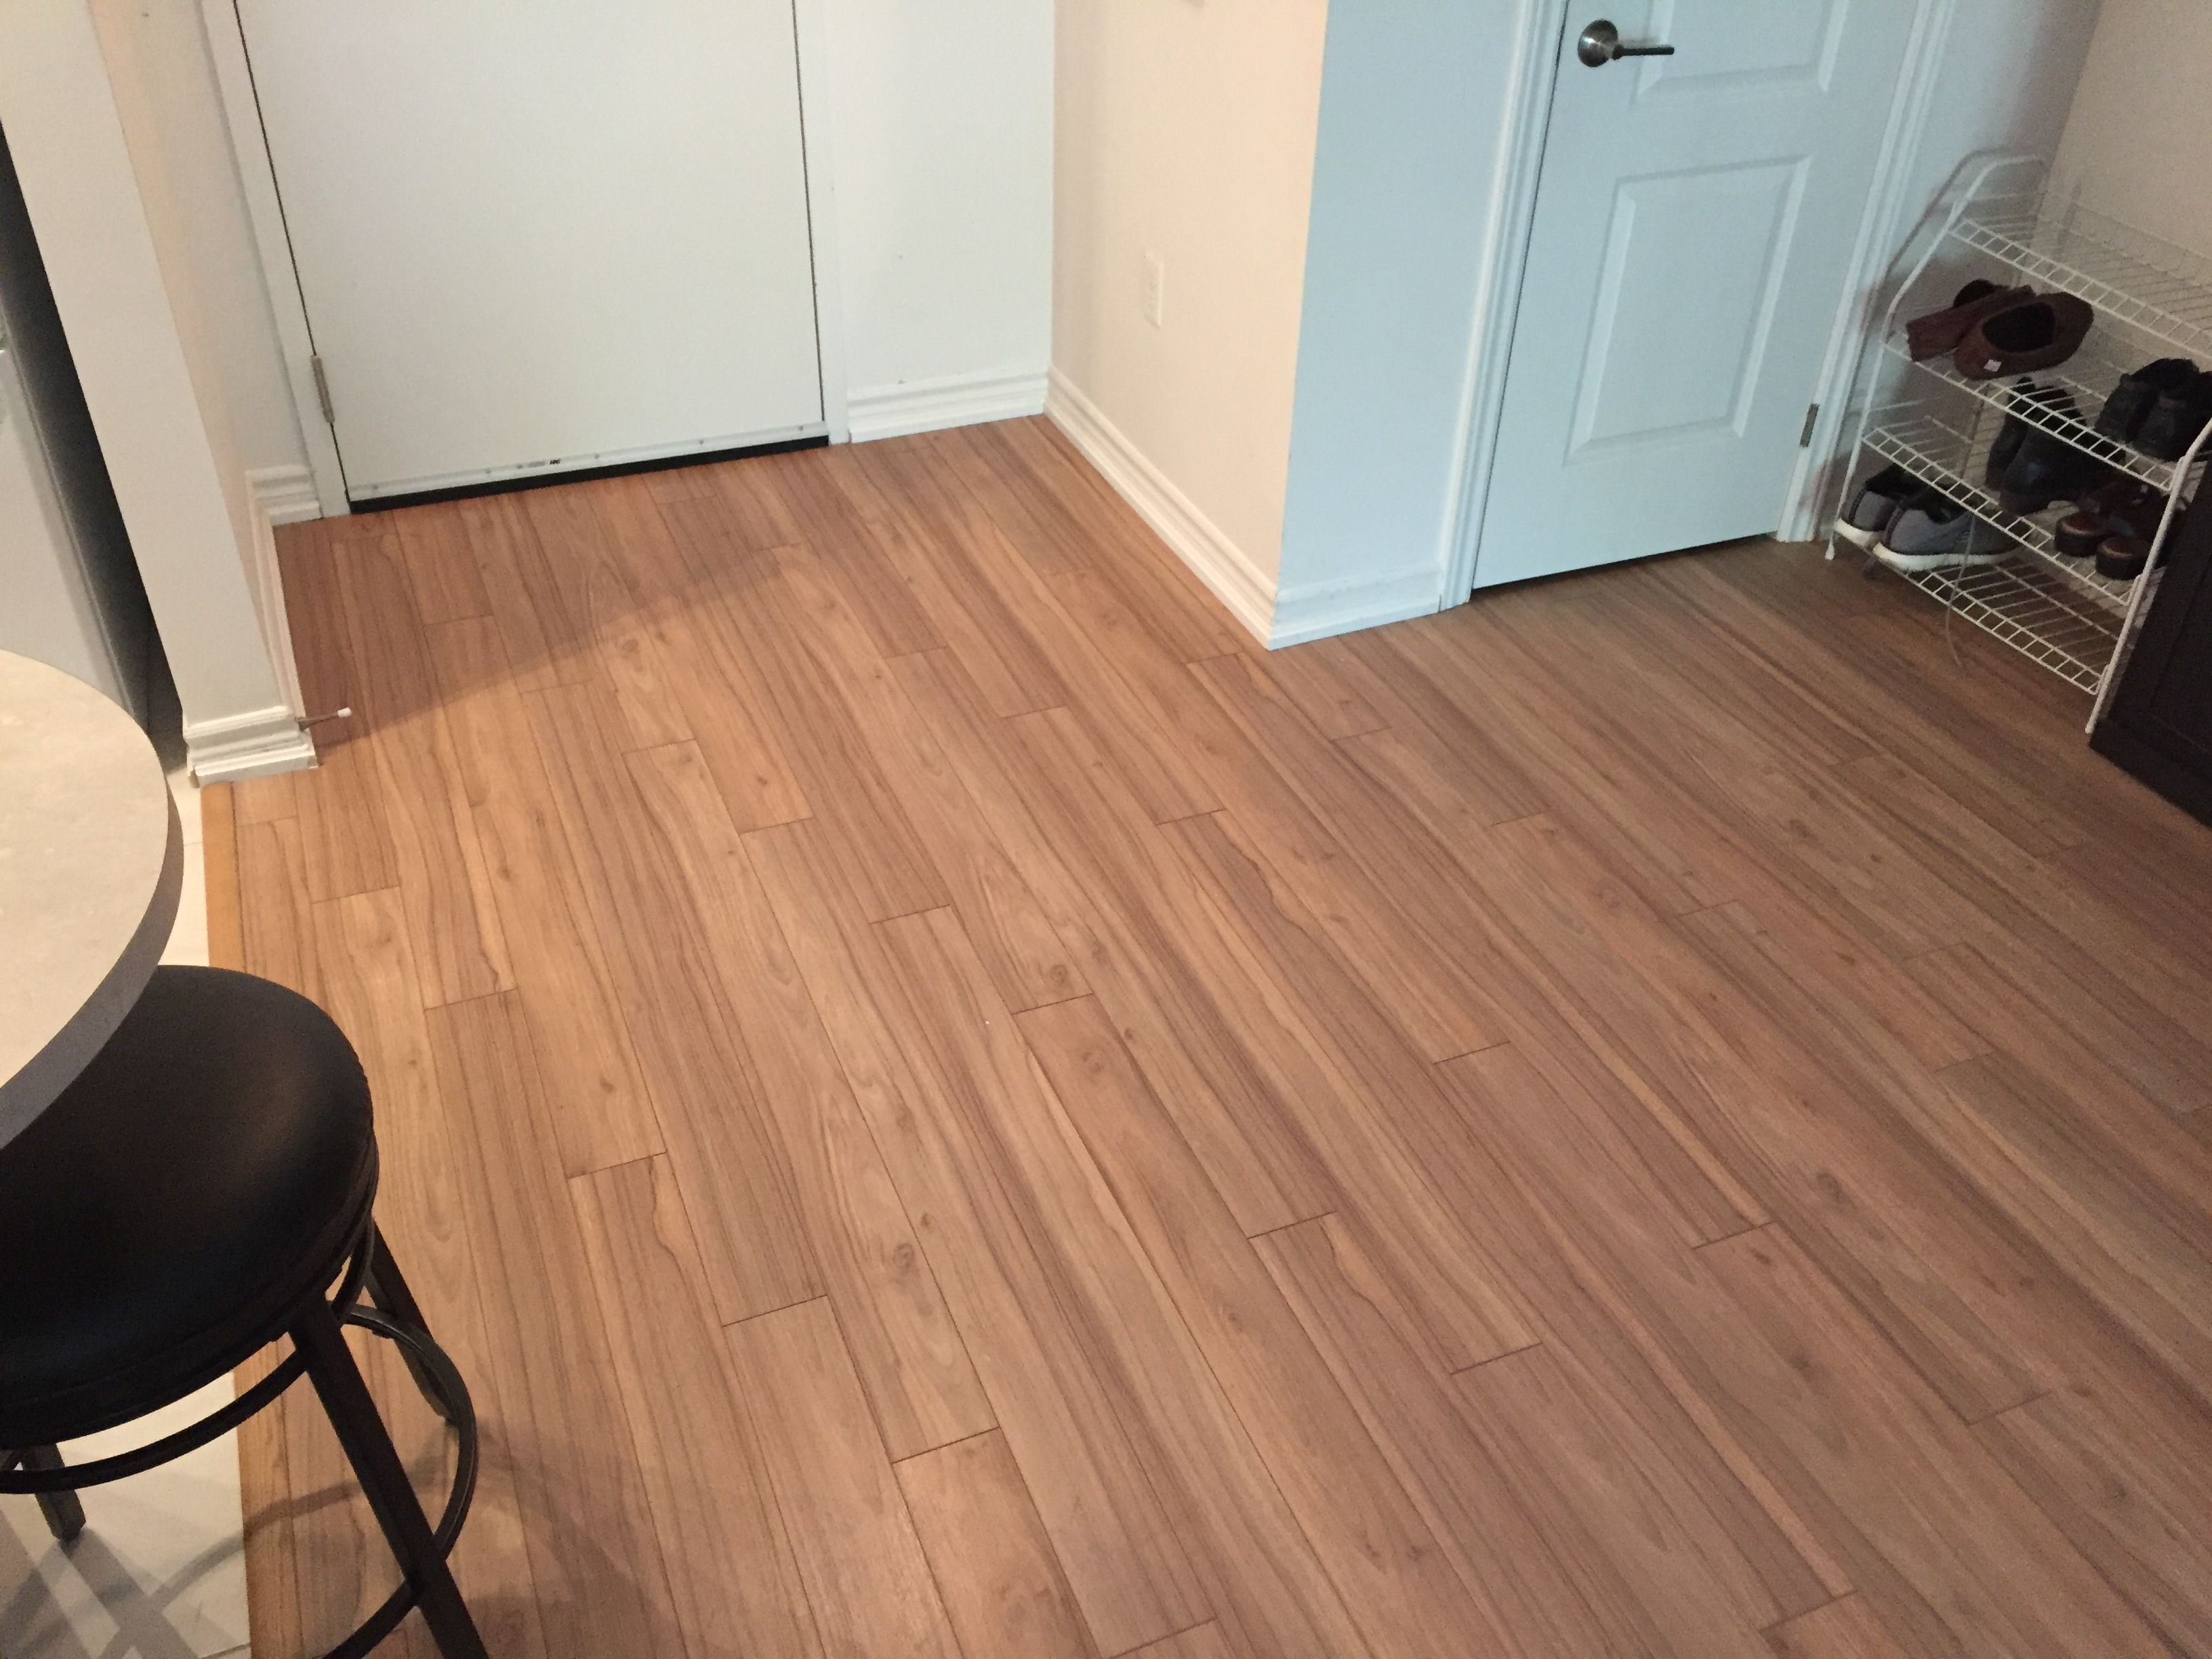 Pin by Grand Floors on Laminates Types of flooring